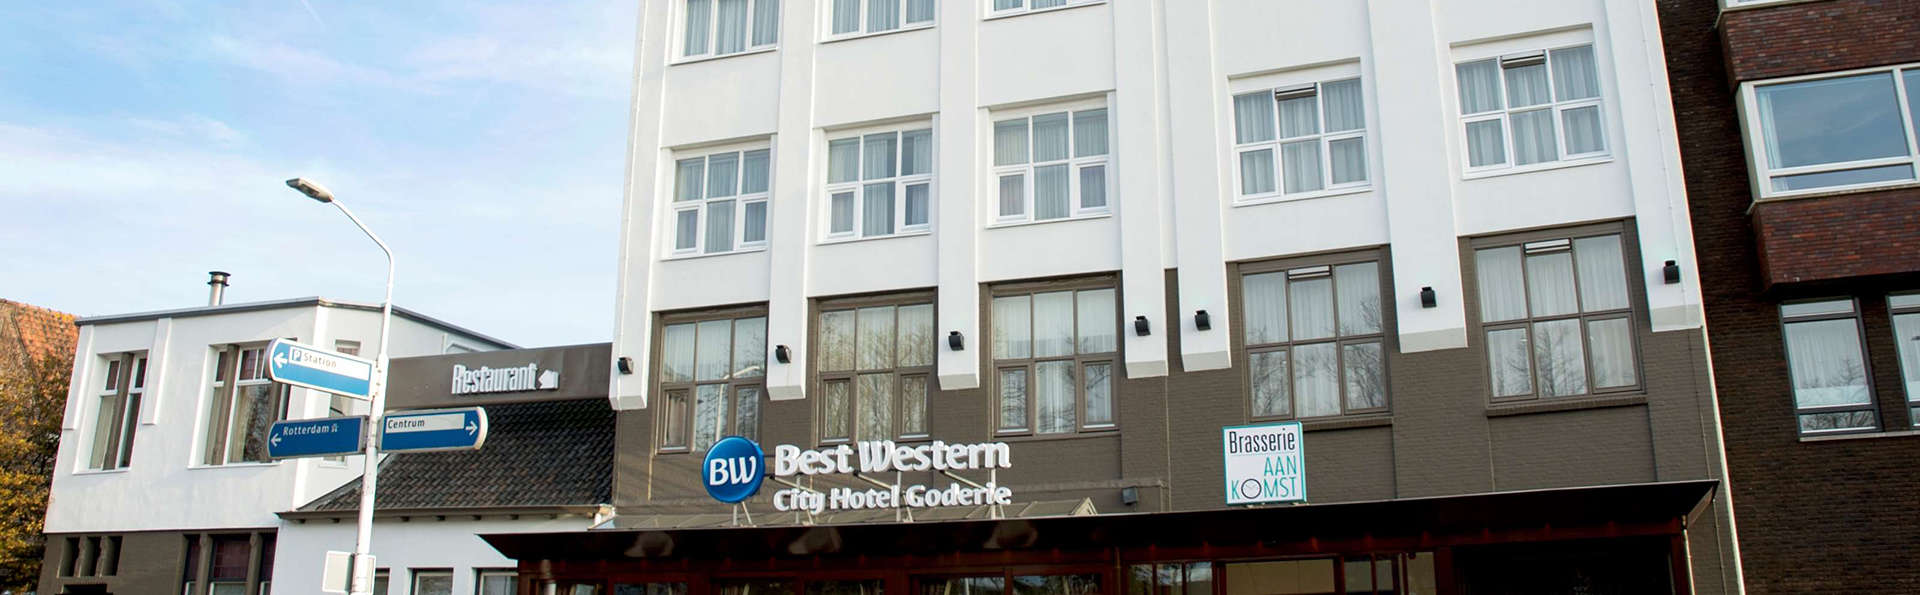 Best Western City Hotel Goderie - EDIT_FRONT.jpg